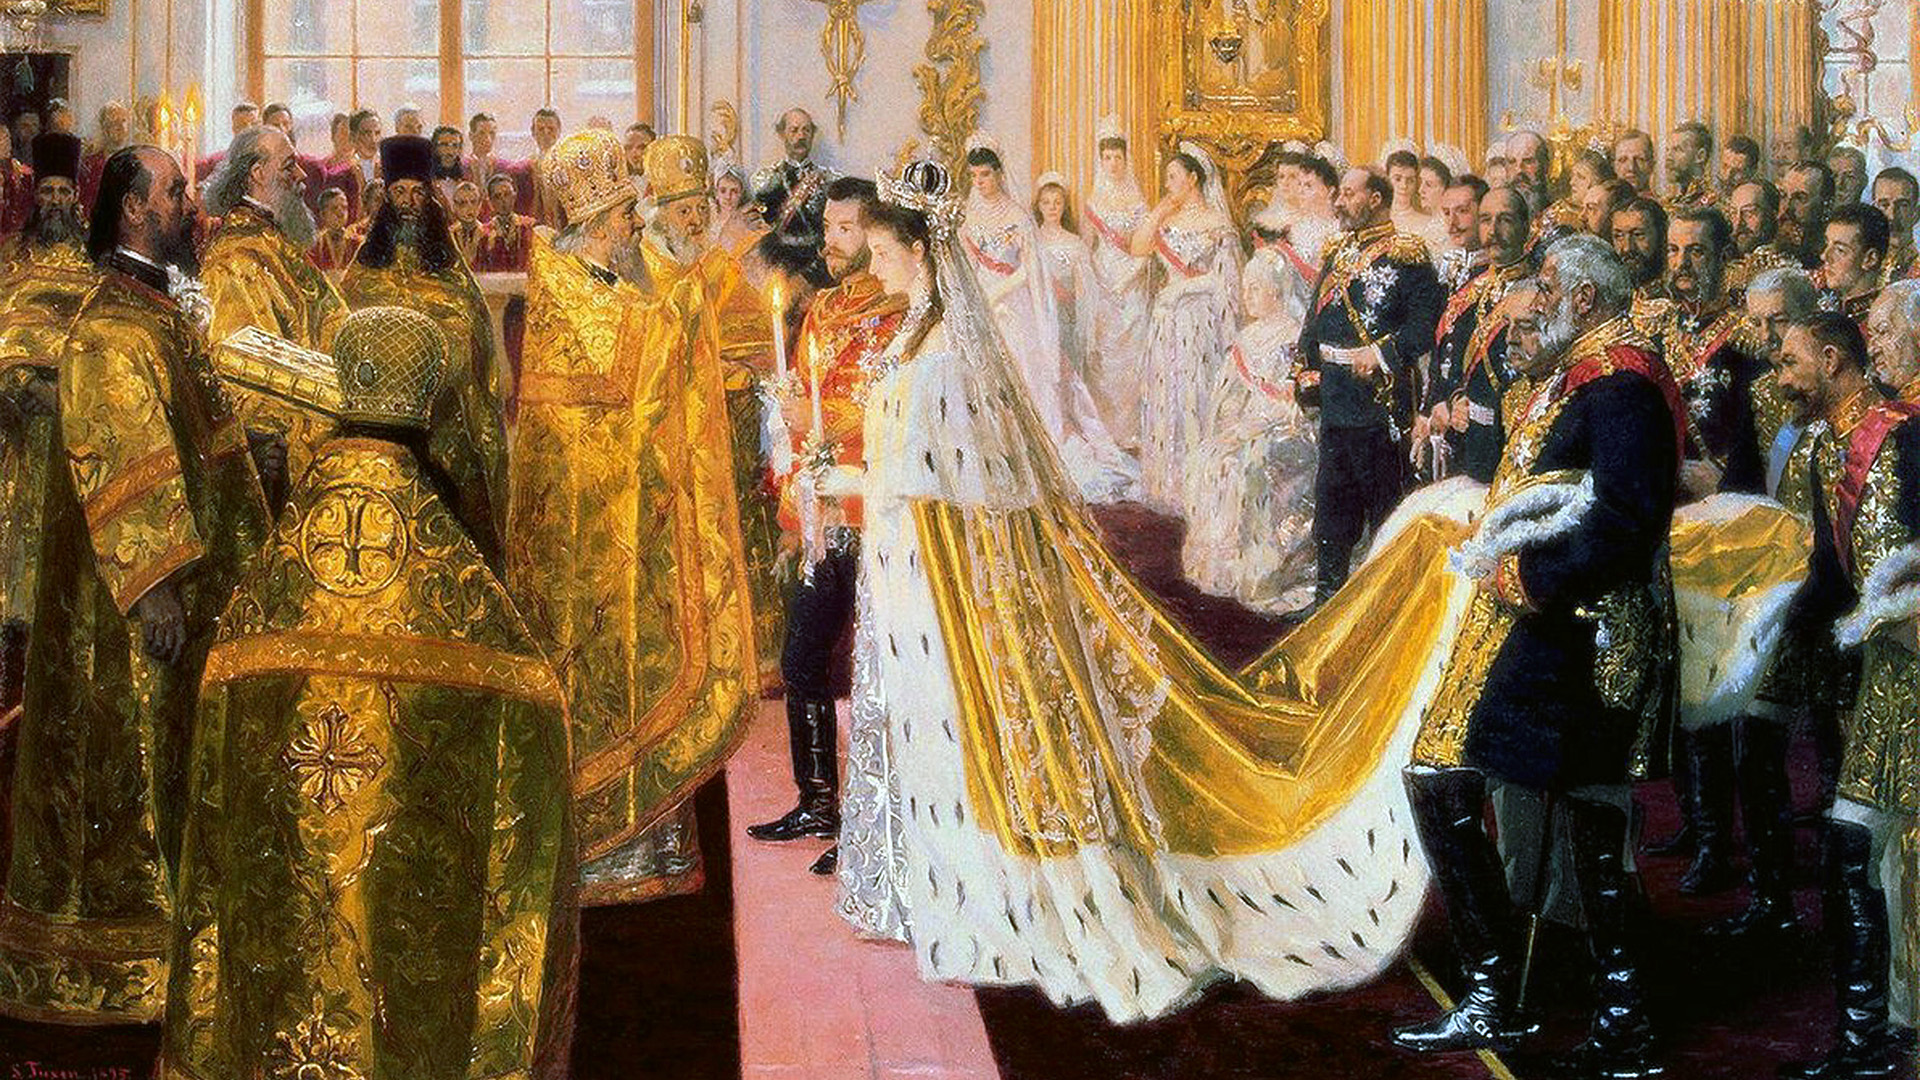 The wedding of Tsar Nicholas II and the Princess Alix of Hesse, 1894. (Credit: Fine Art Images/Heritage Images/Getty Images)